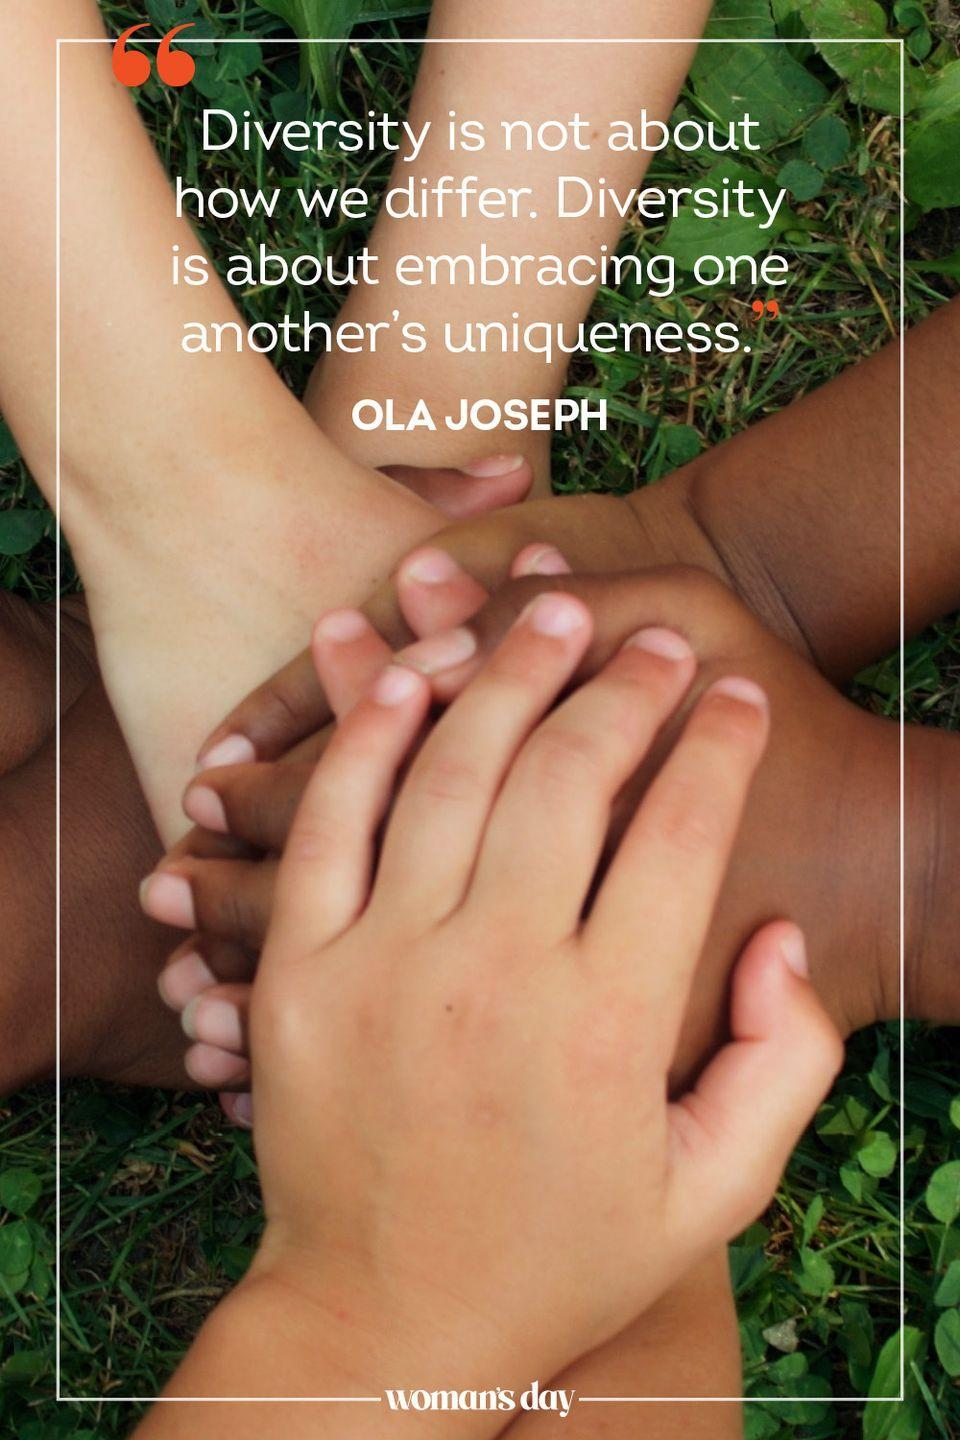 """<p>""""Diversity is not about how we differ. Diversity is about embracing one another's uniqueness."""" — Ola Joseph</p>"""